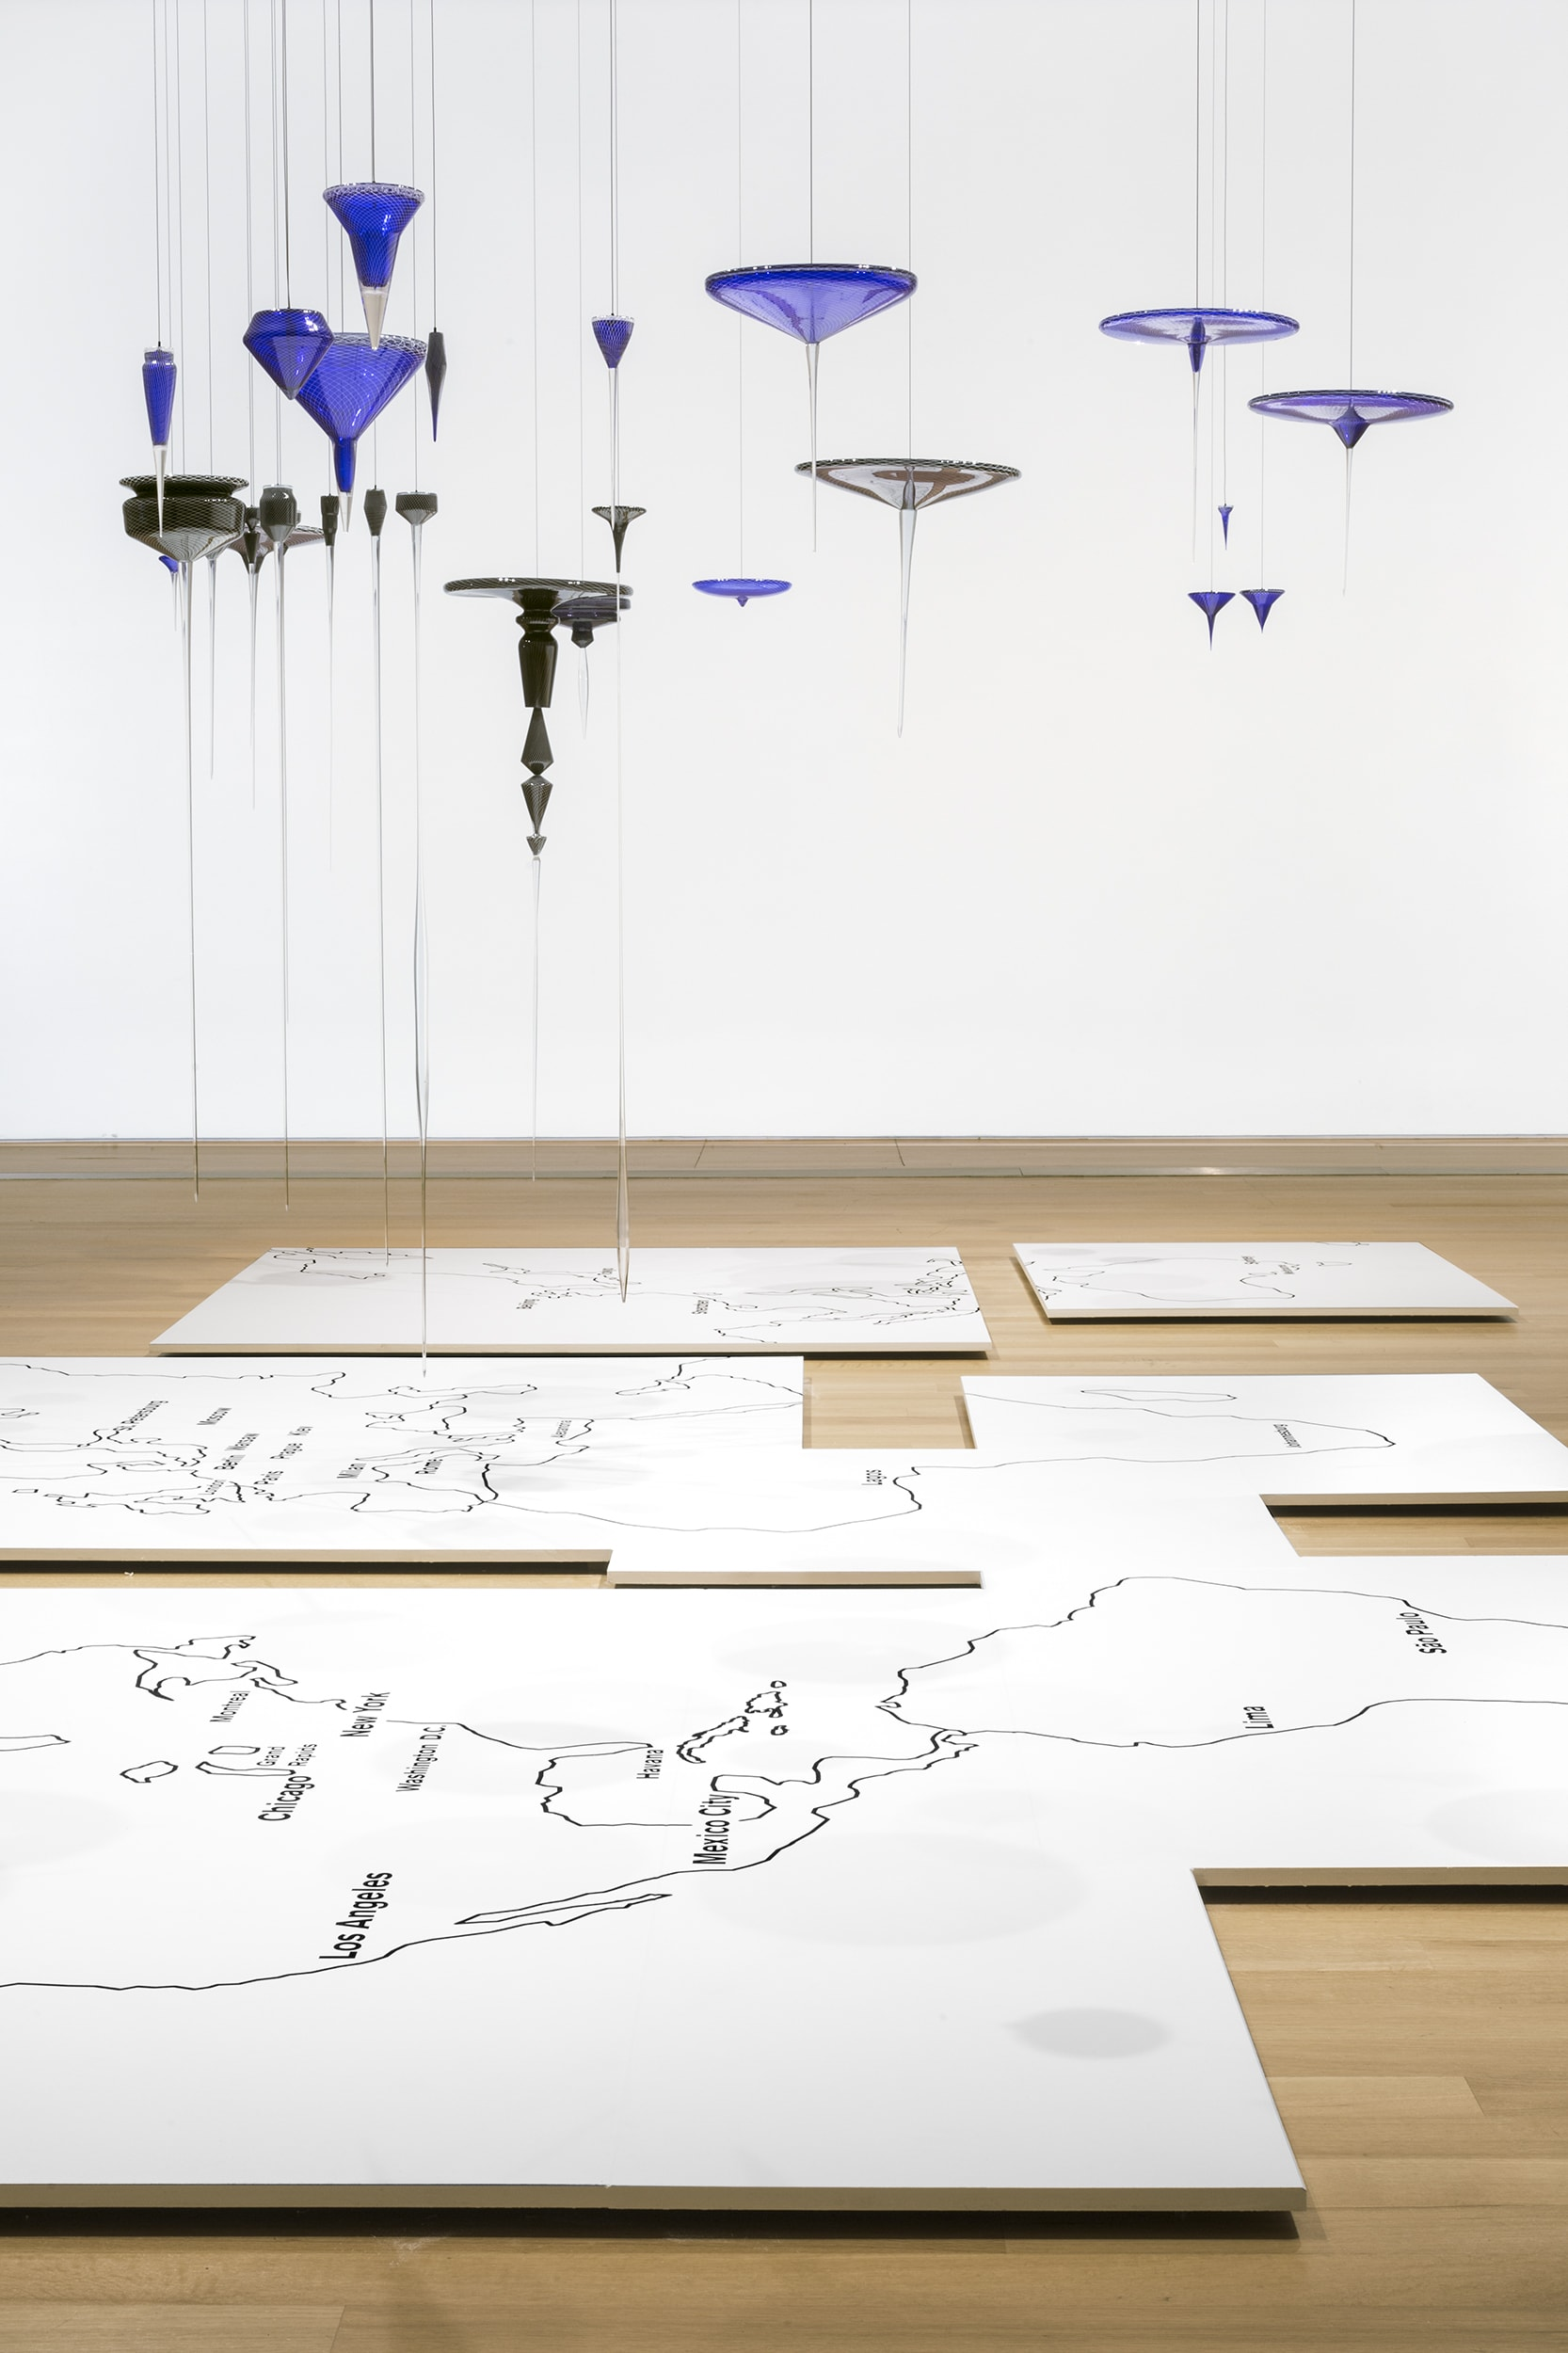 Global Cities - North America and South America (installation view)